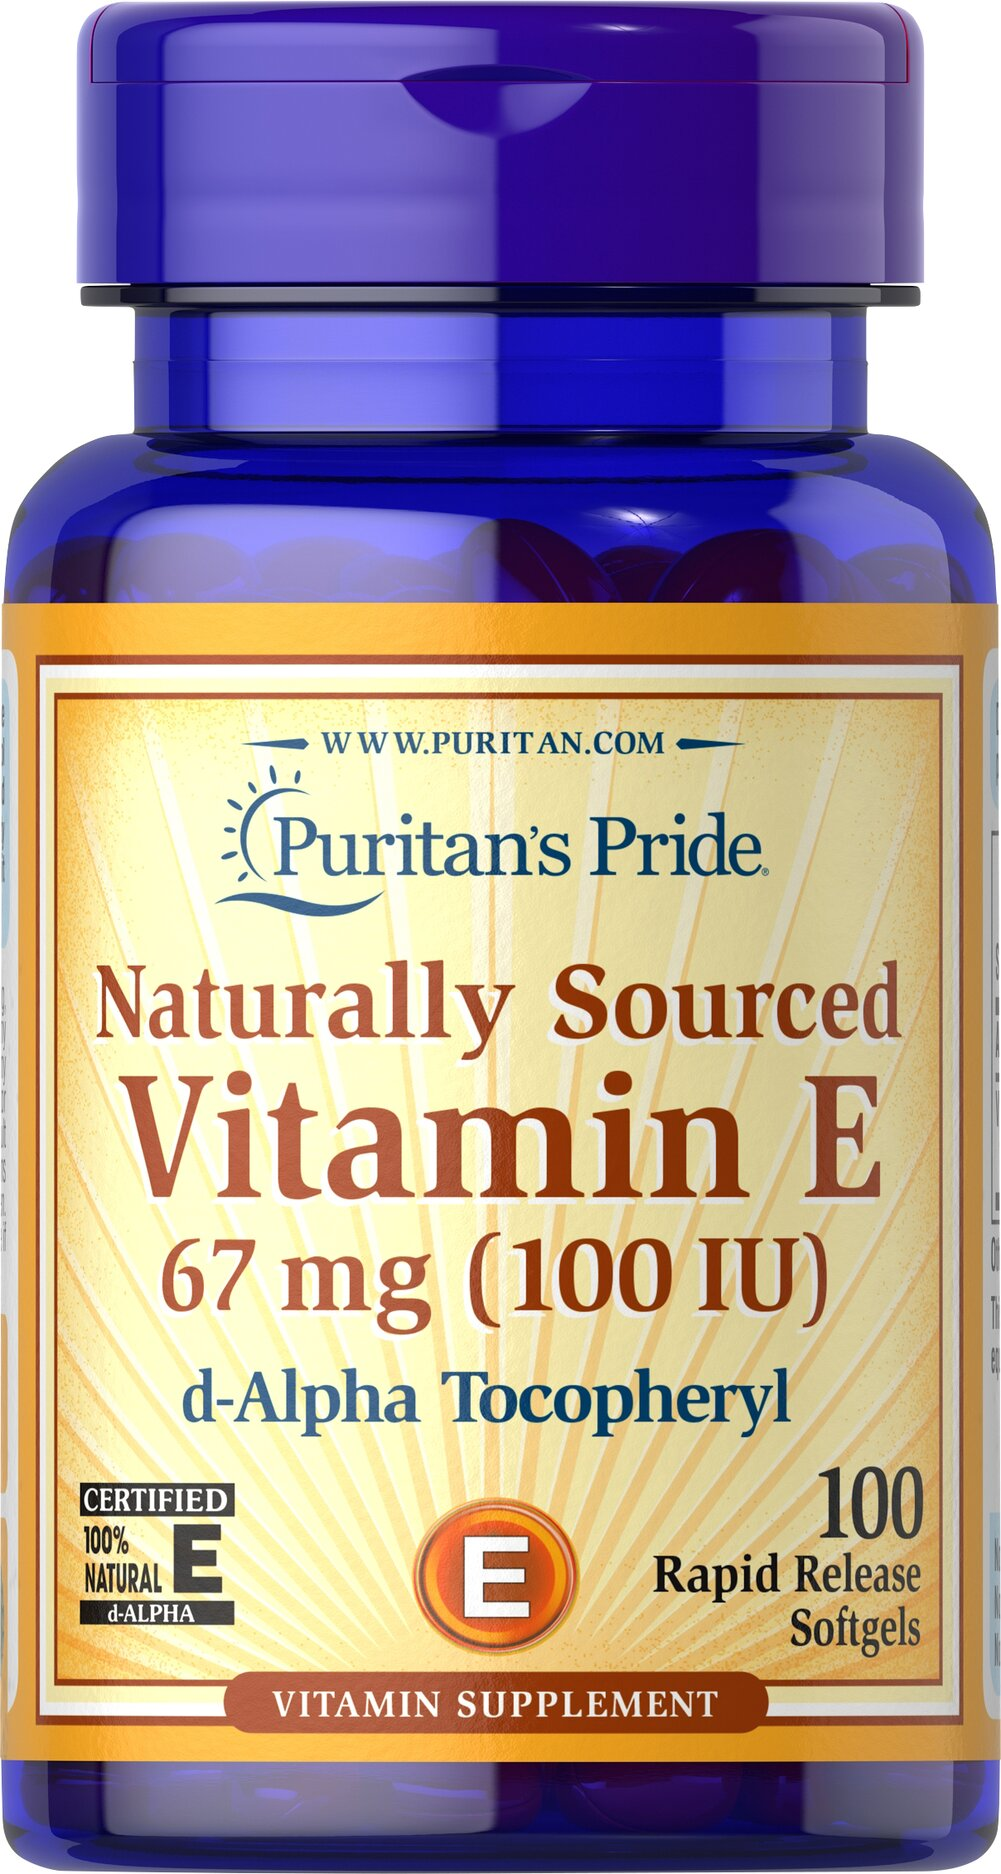 Vitamin E-100 iu 100% Natural  100 Softgels 100 IU $9.99